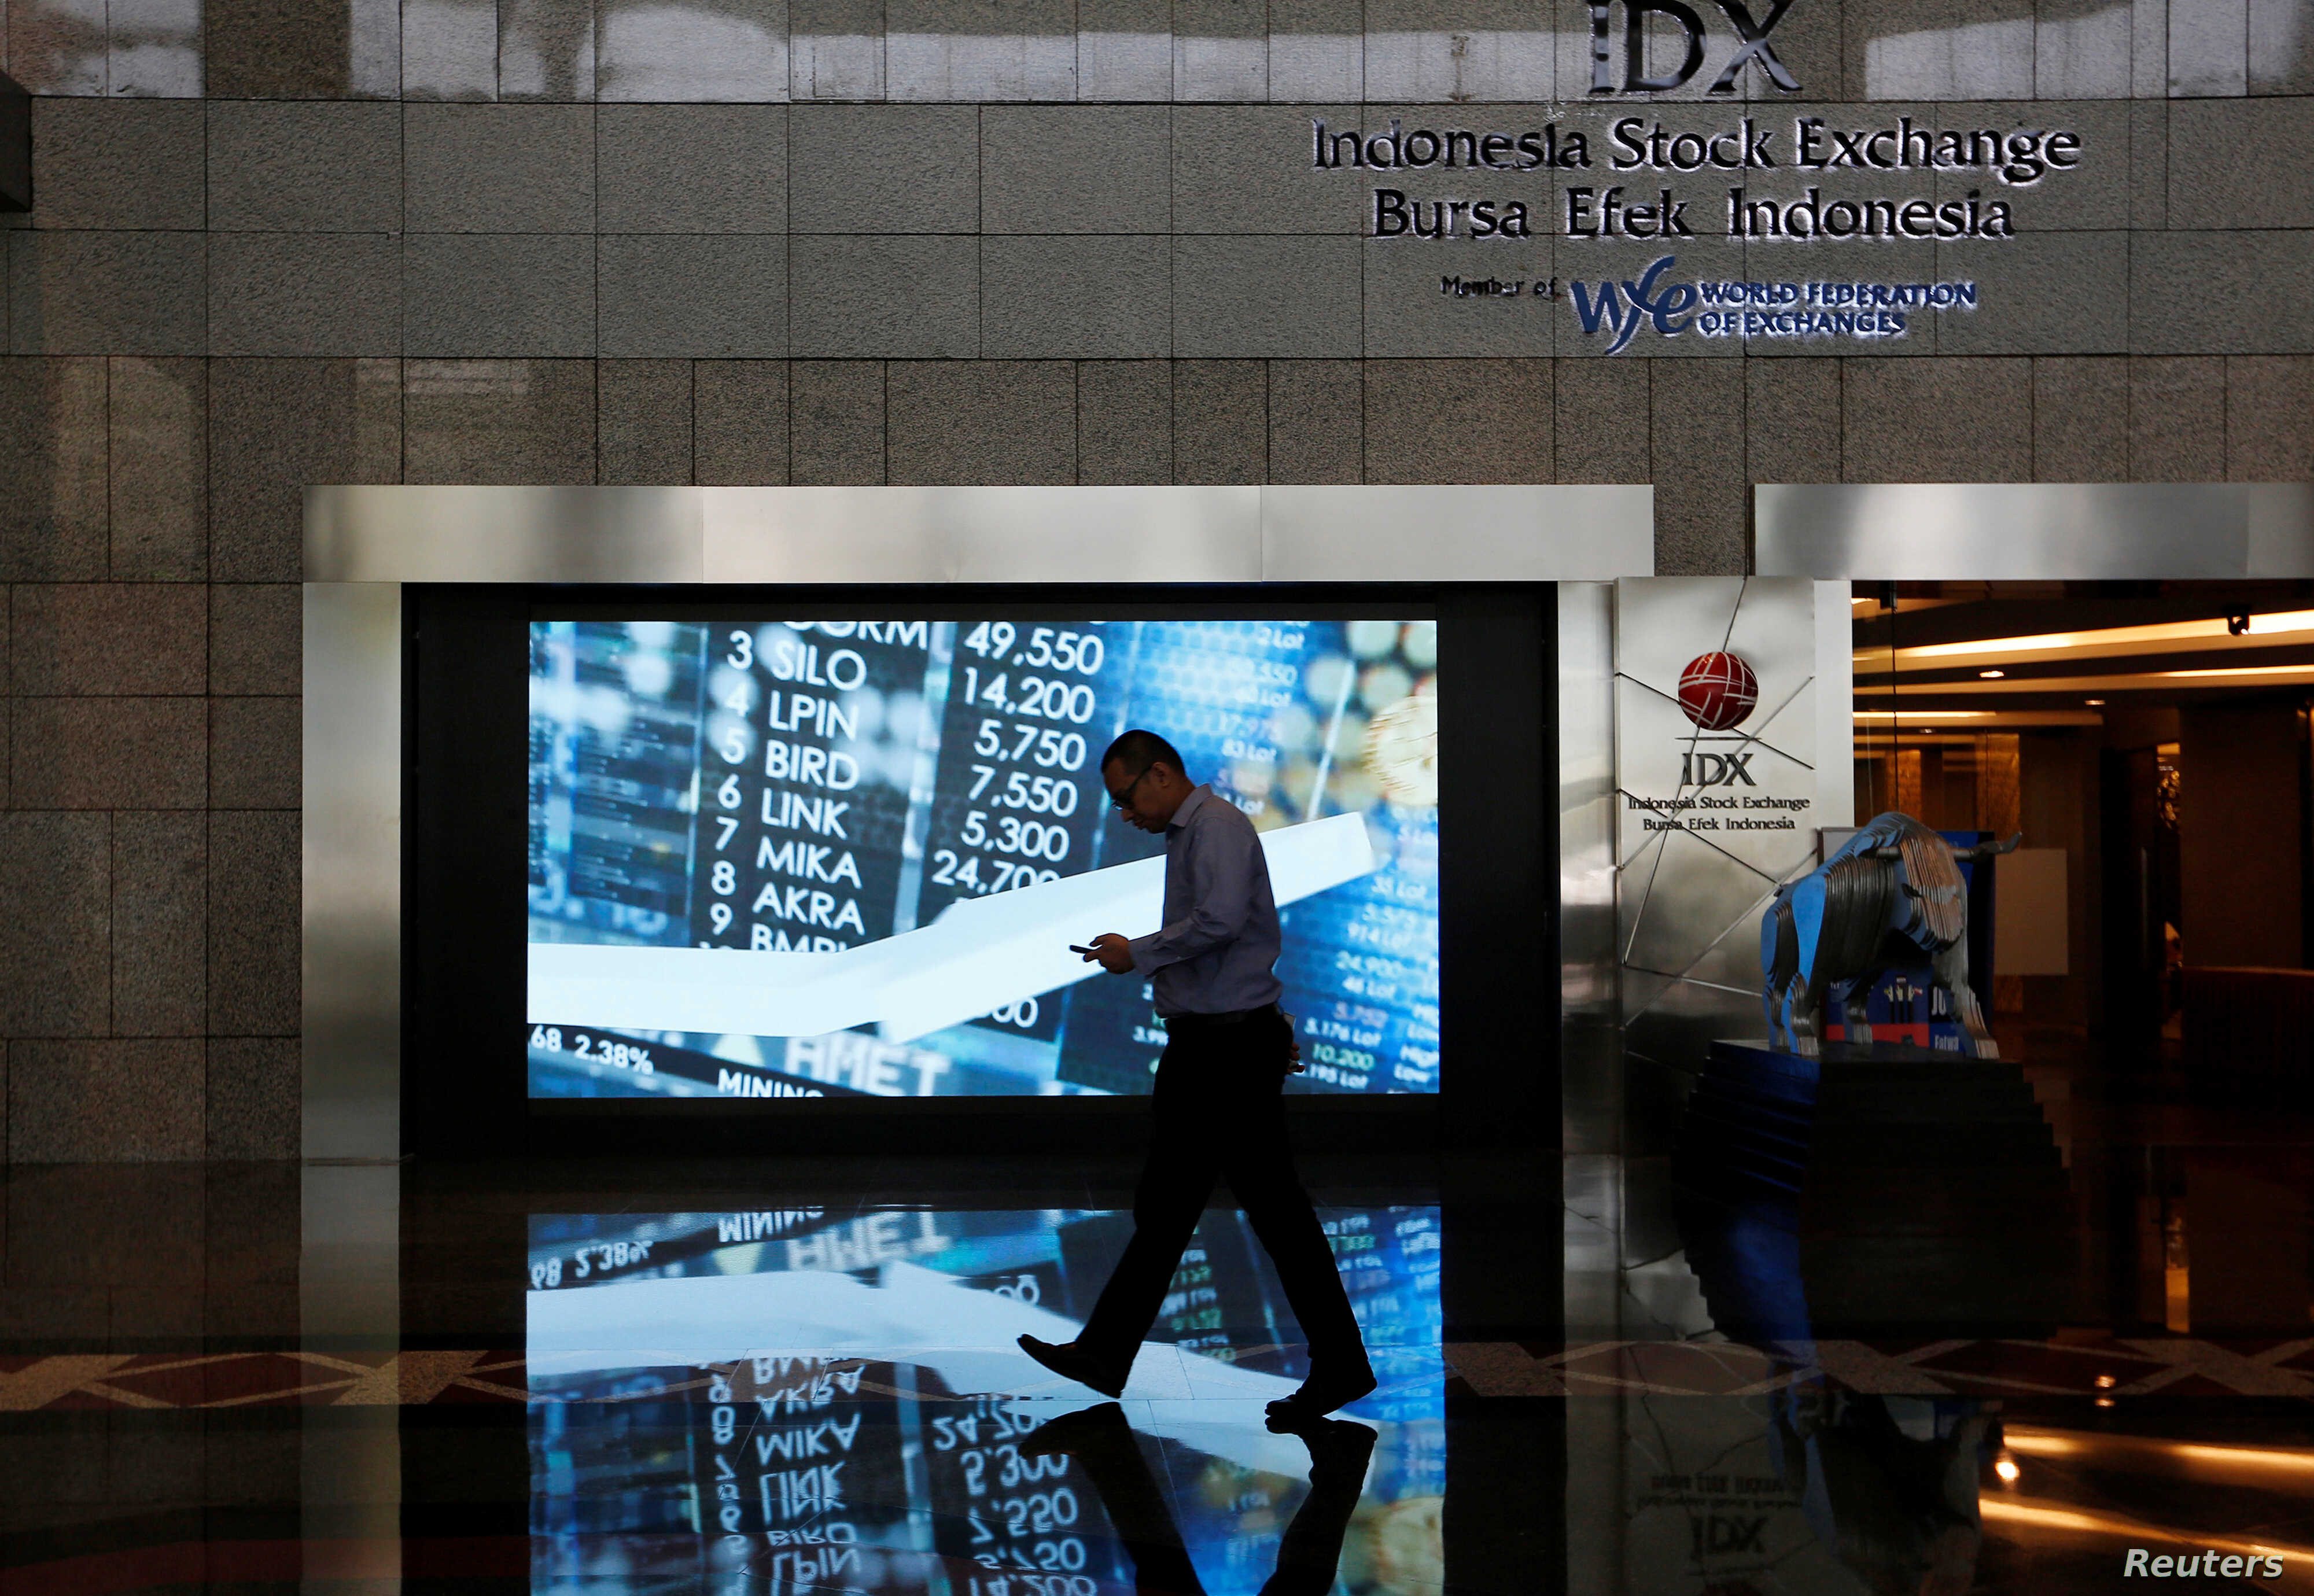 A man walks past screen at the Indonesia Stock Exchange building in Jakarta, Indonesia, Sept. 6, 2018.